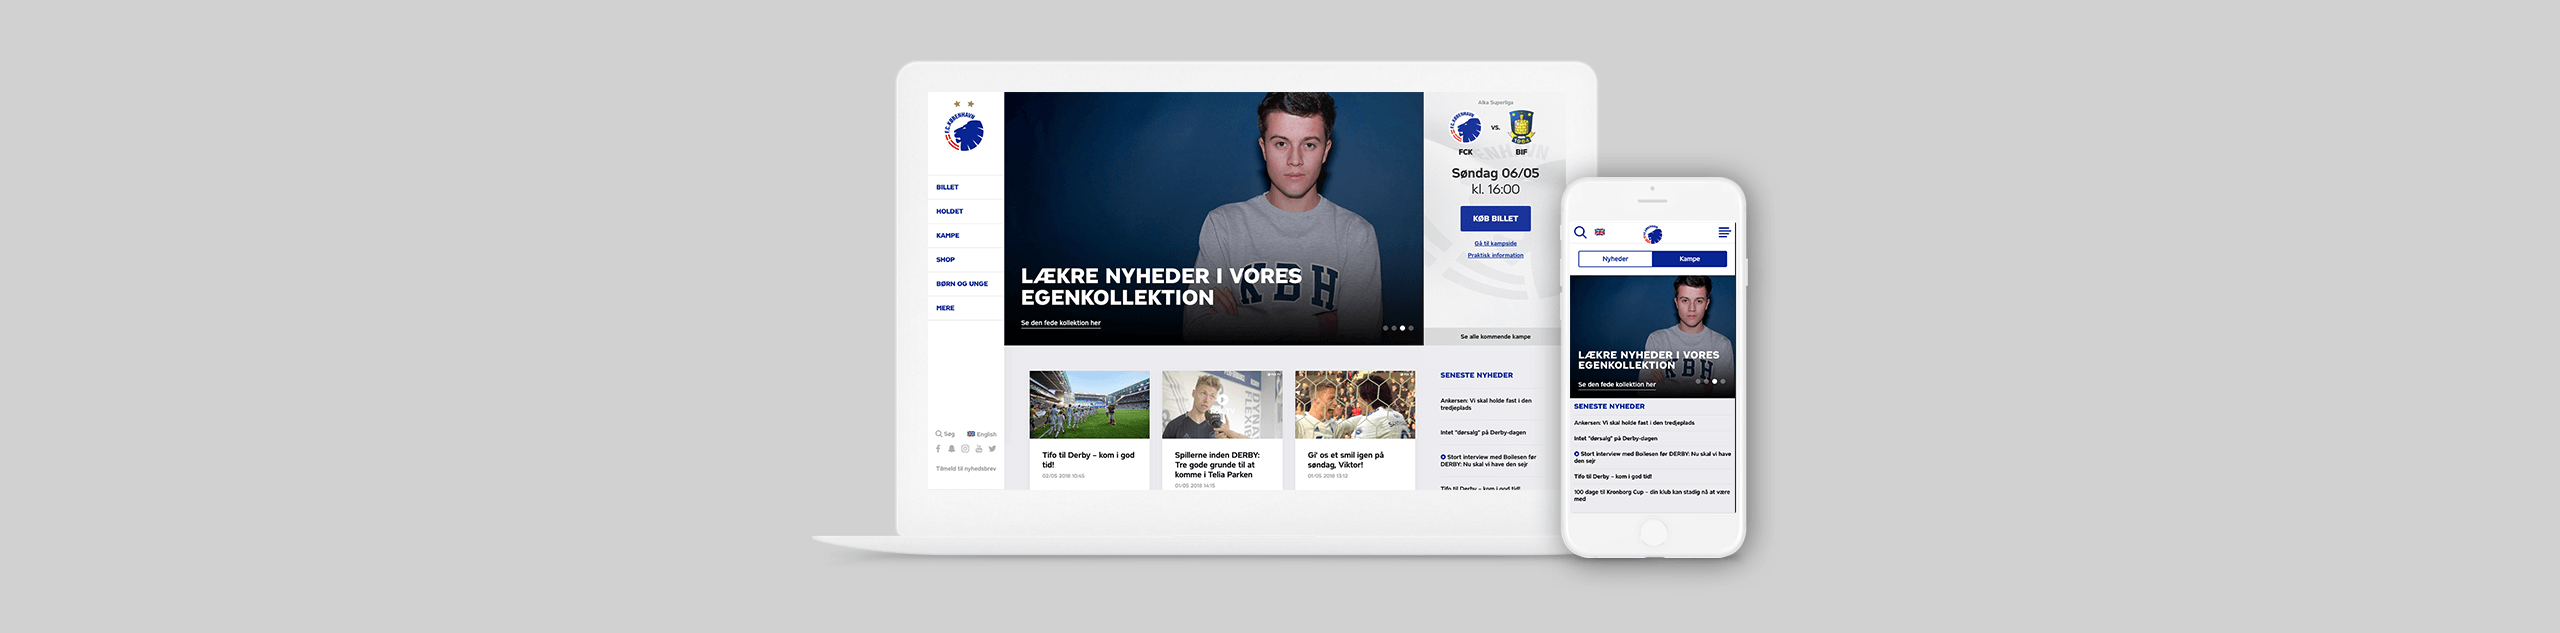 Header of F.C. Copenhagen switched to Drupal 8 blog